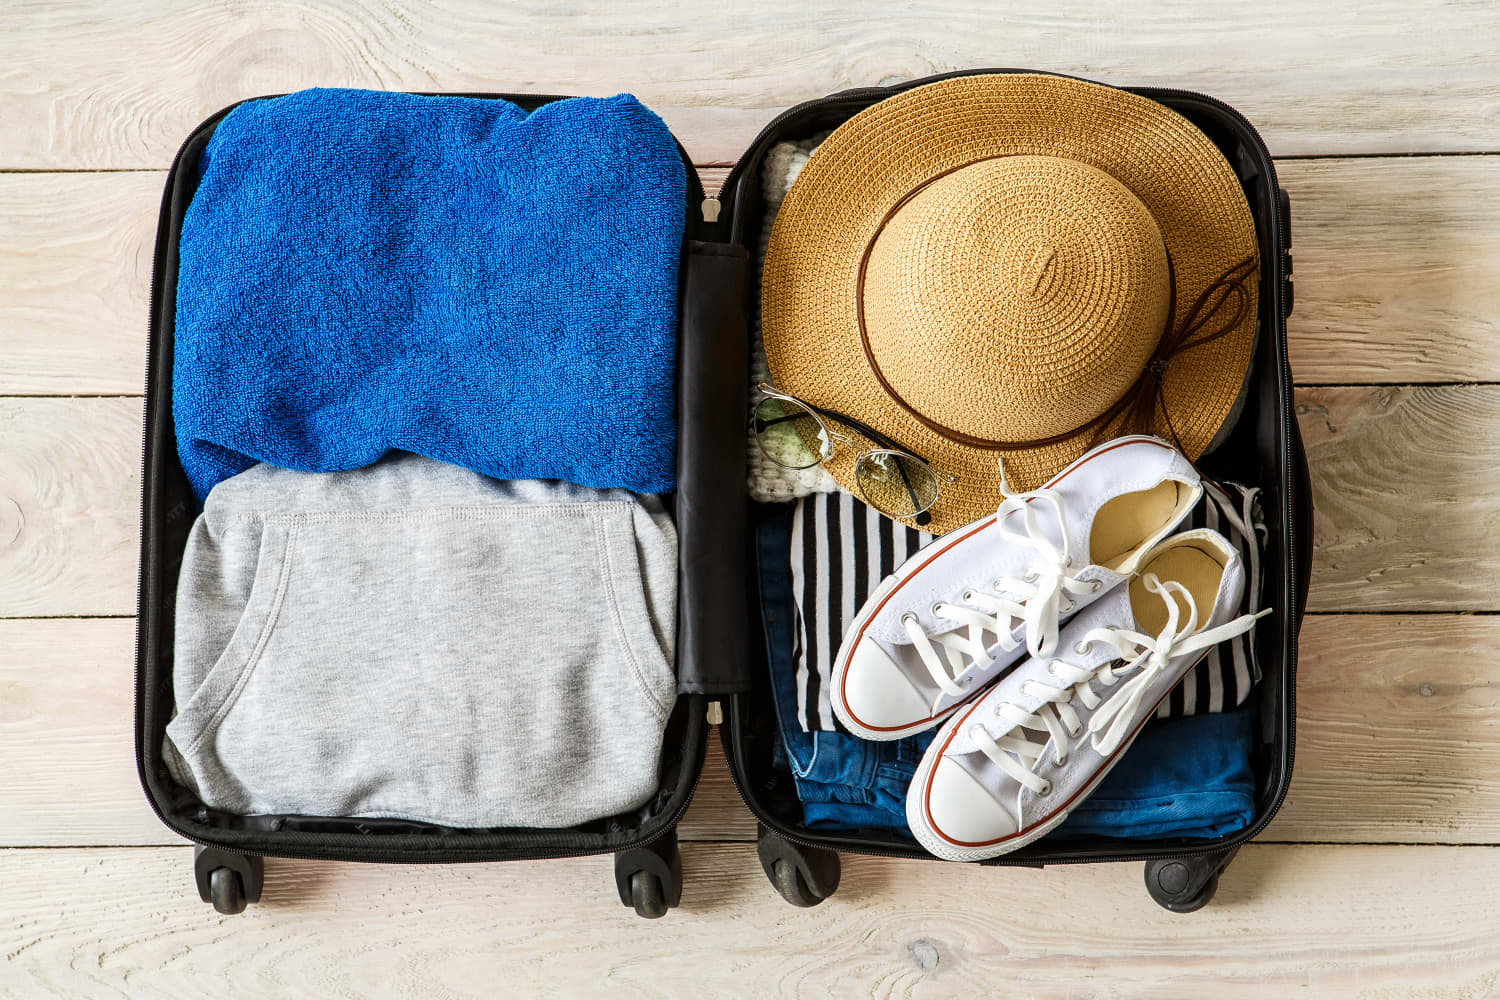 This $21 Item Made Me a More Organized Traveler